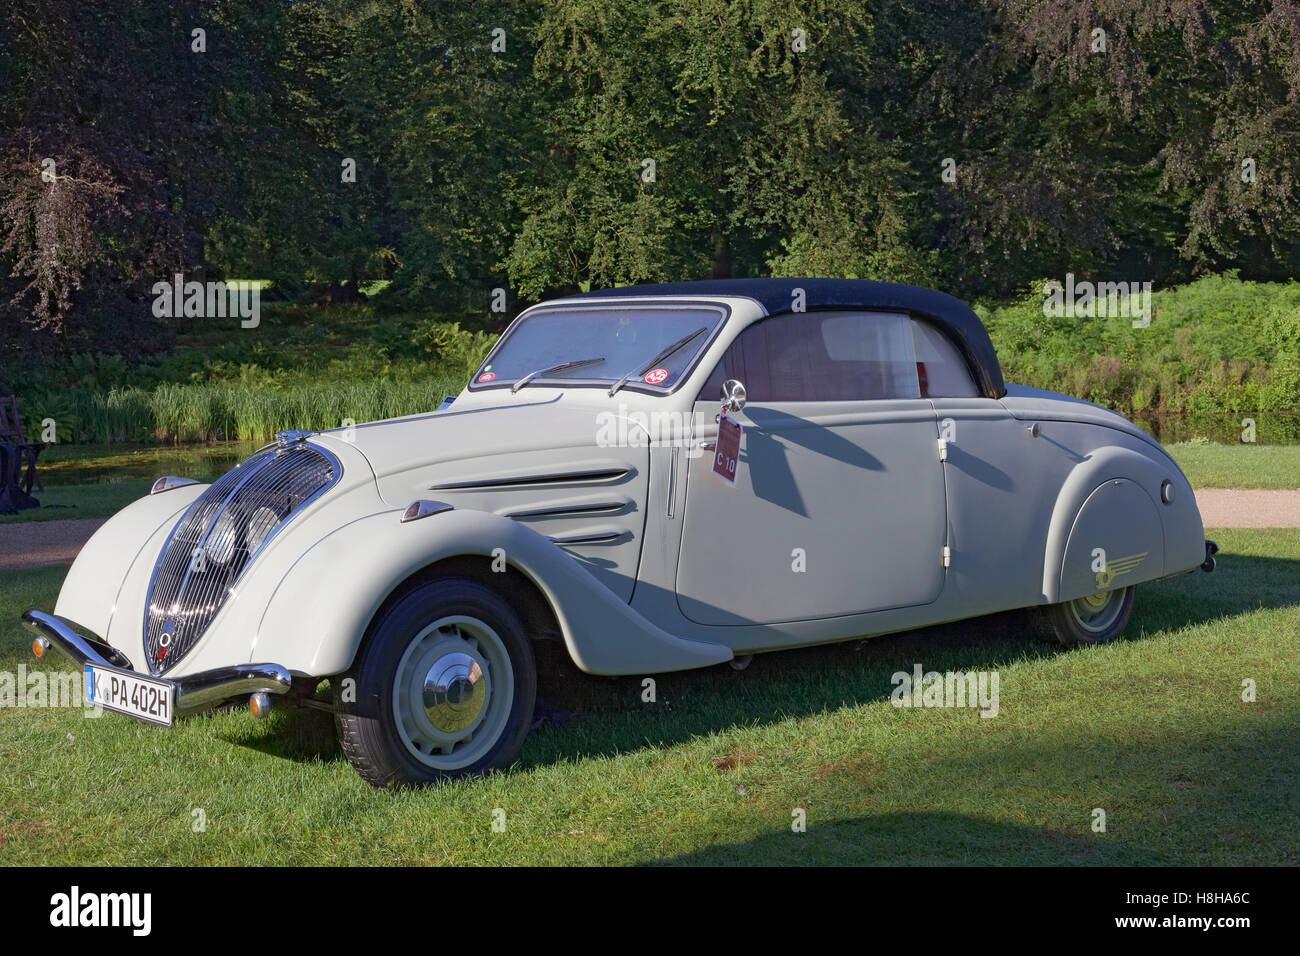 peugeot 402 eclipse cabriolet from 1940 classic french car schloss stock photo royalty free. Black Bedroom Furniture Sets. Home Design Ideas